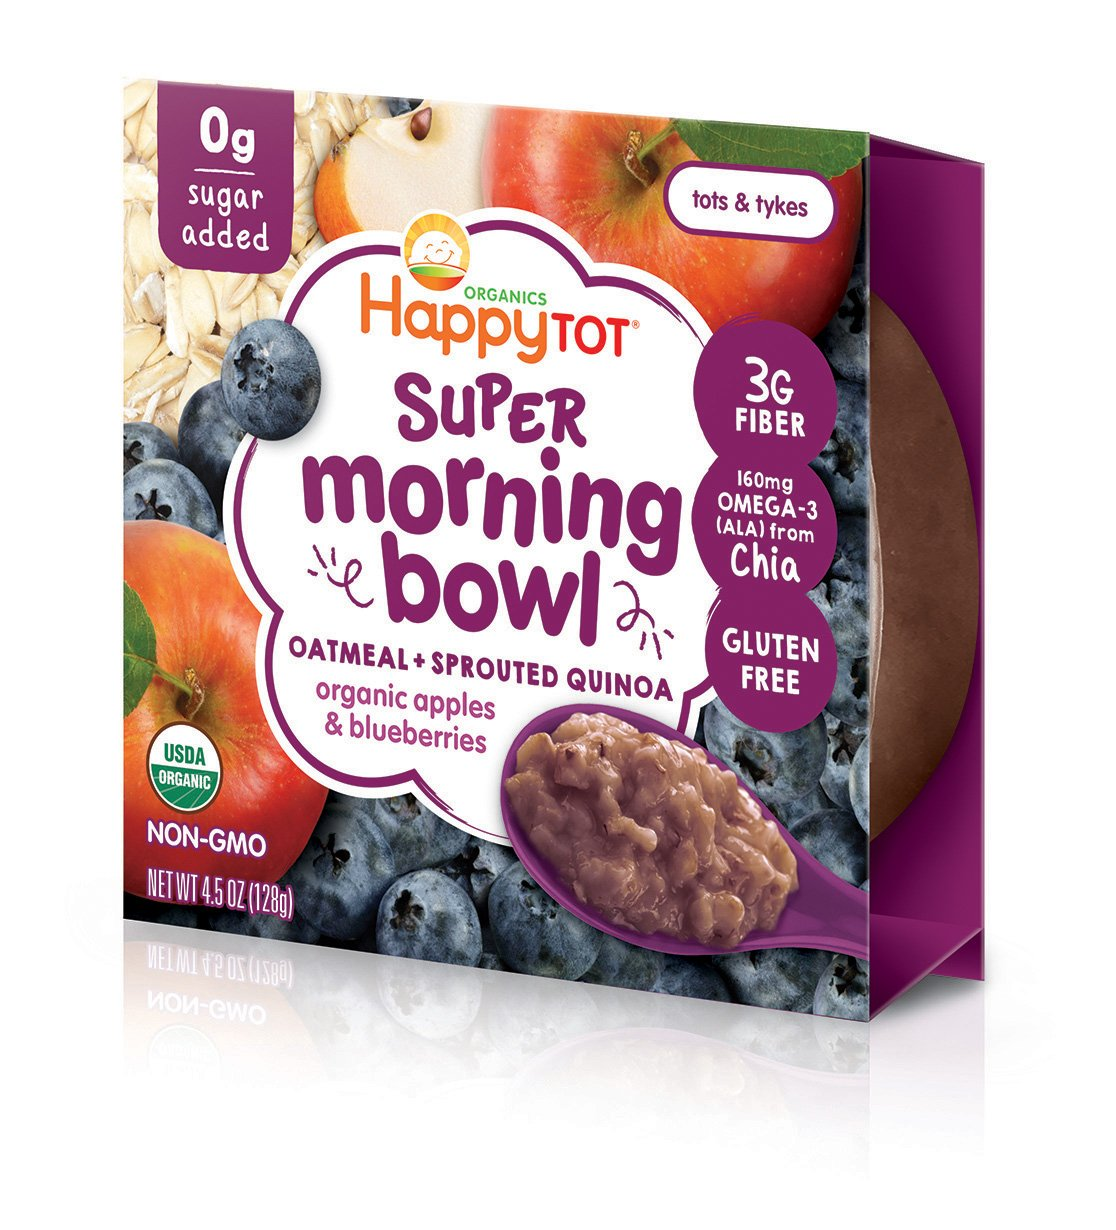 Happy Tot Super Morning Oatmeal Bowls Organic Toddler Food Apples and Blueberries, 4.5 Ounce Bowls (Pack of 8) Baby/Toddler Food Breakfast Bowl, Organic Toddler Breakfast, Yogurt Fruit & Oats by Happy Tot